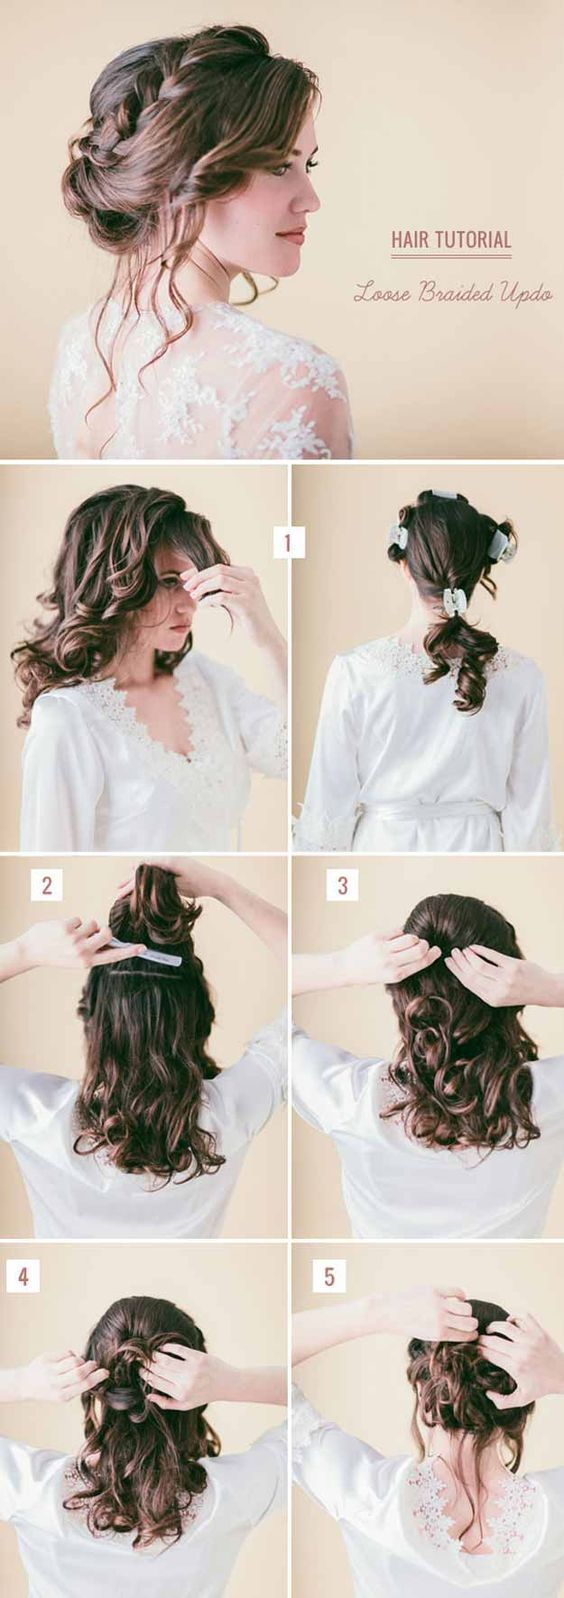 Wedding Hairstyles for Long Hair - Loose Updo with Braids - Looking ...